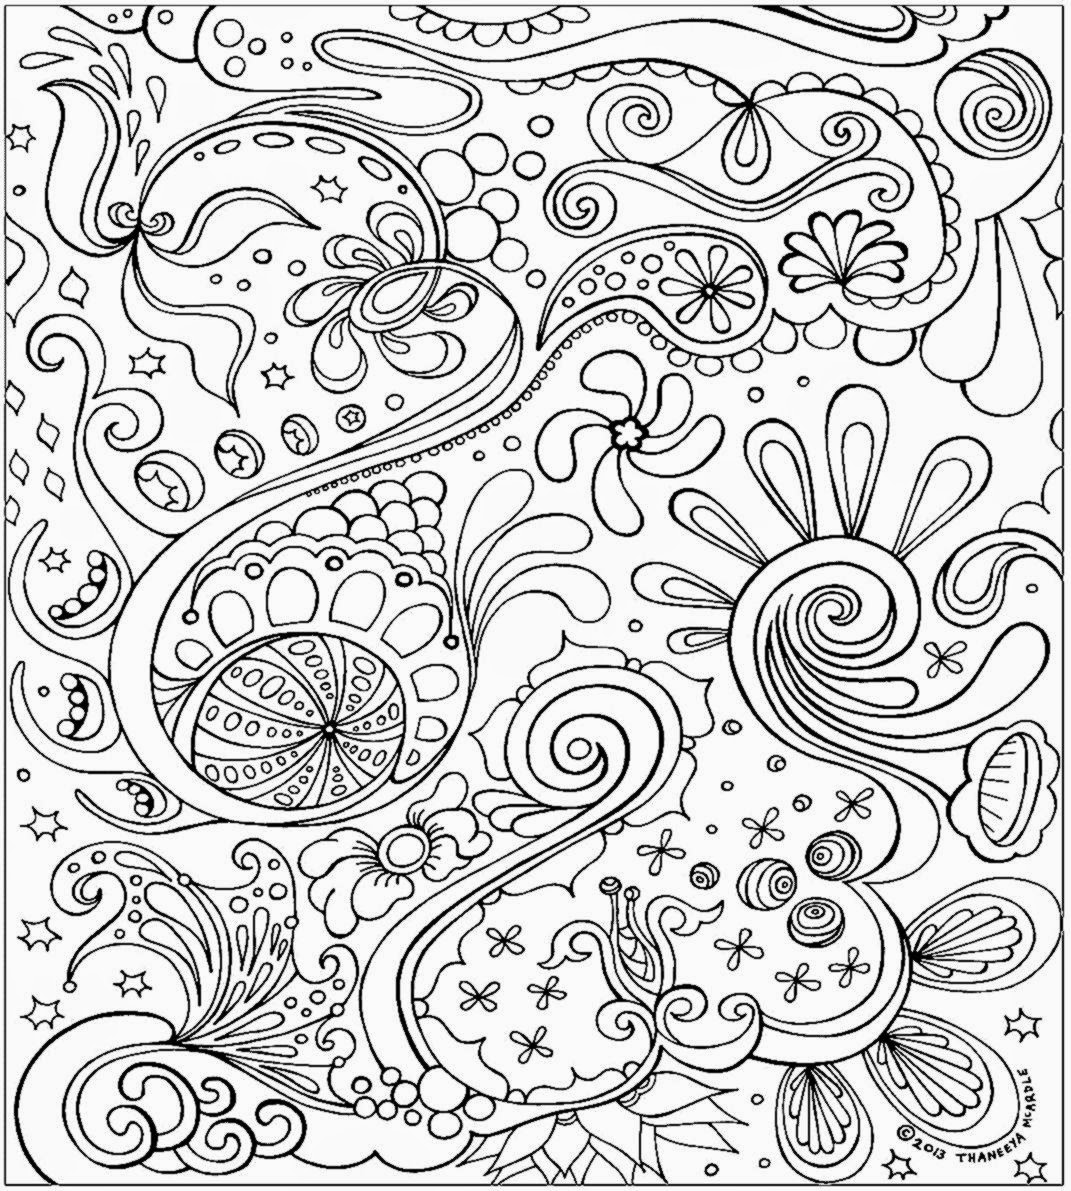 Coloring sheets for adults free coloring sheet for Coloring pages to print for adults